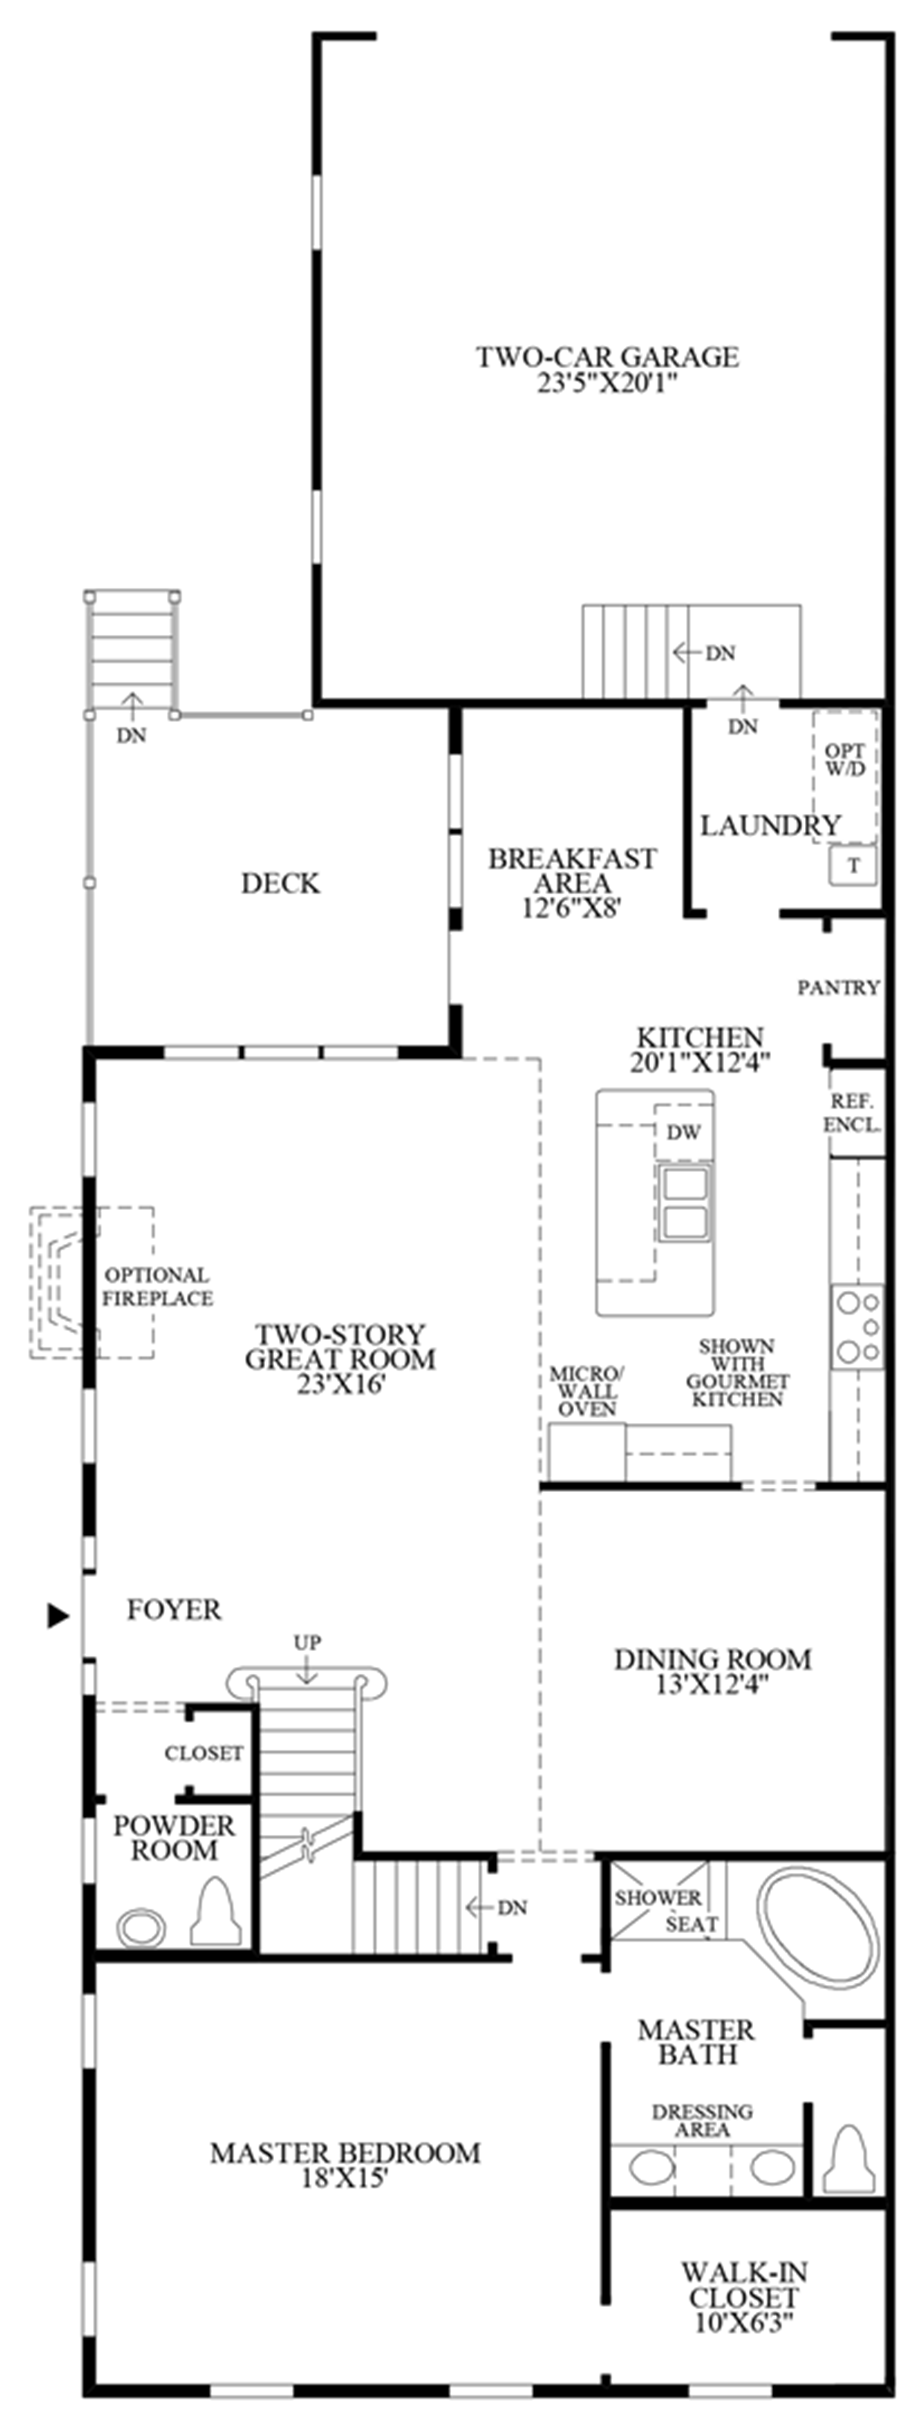 Alternate Master Bath Floor Plan